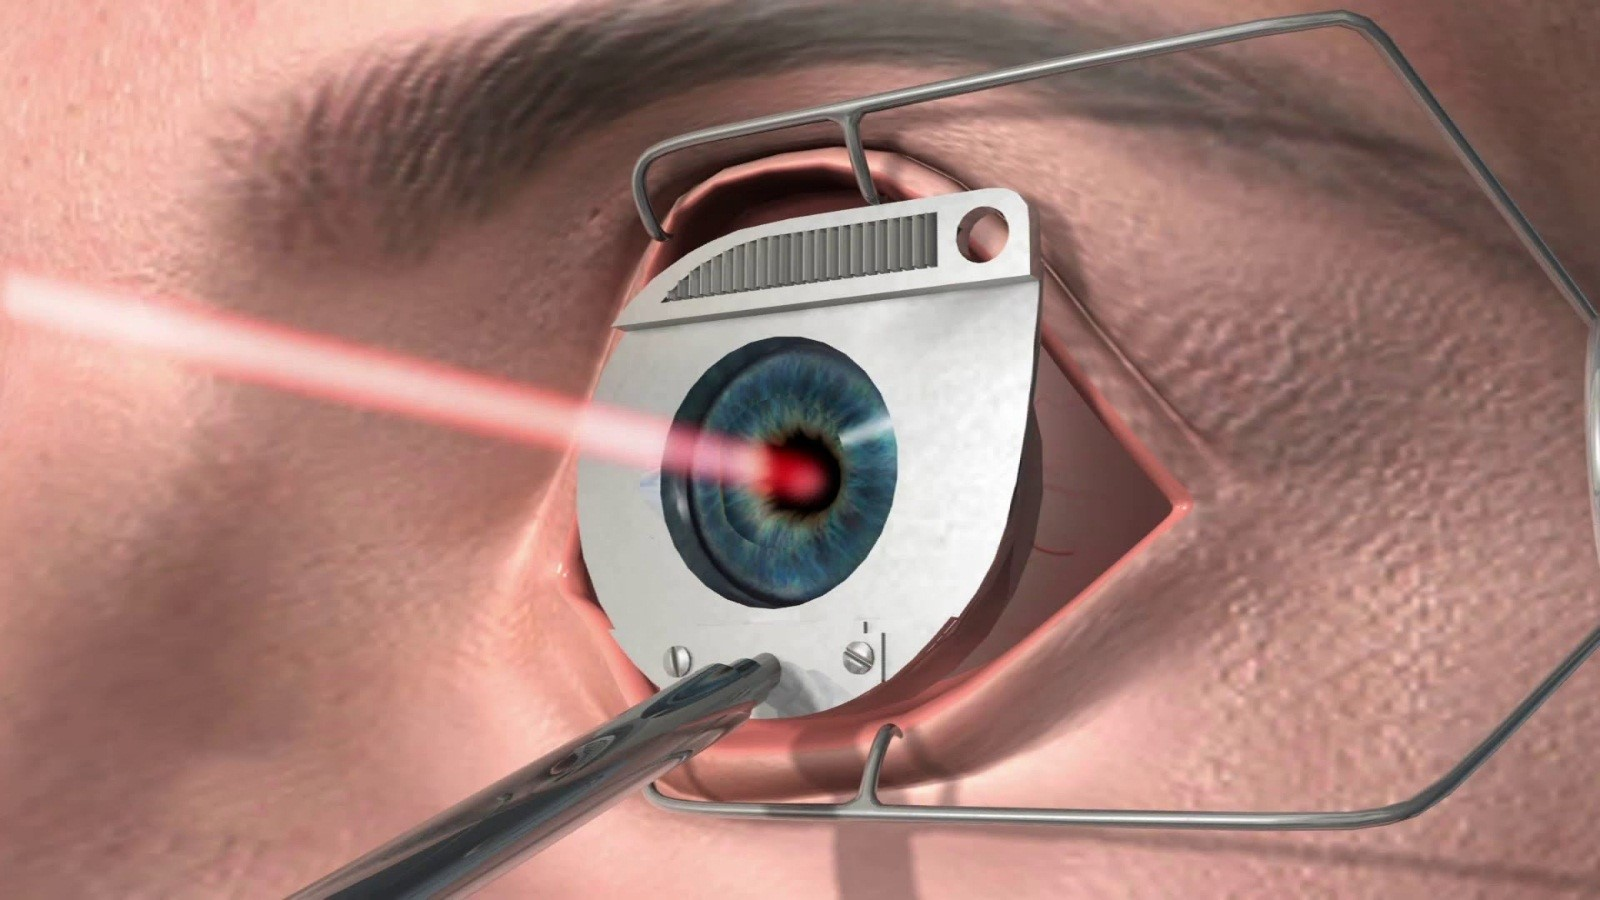 lasik eye surgery Lasik or lasik (laser-assisted in situ keratomileusis), commonly referred to as laser eye surgery or laser vision correction, is a type of refractive surgery for the.